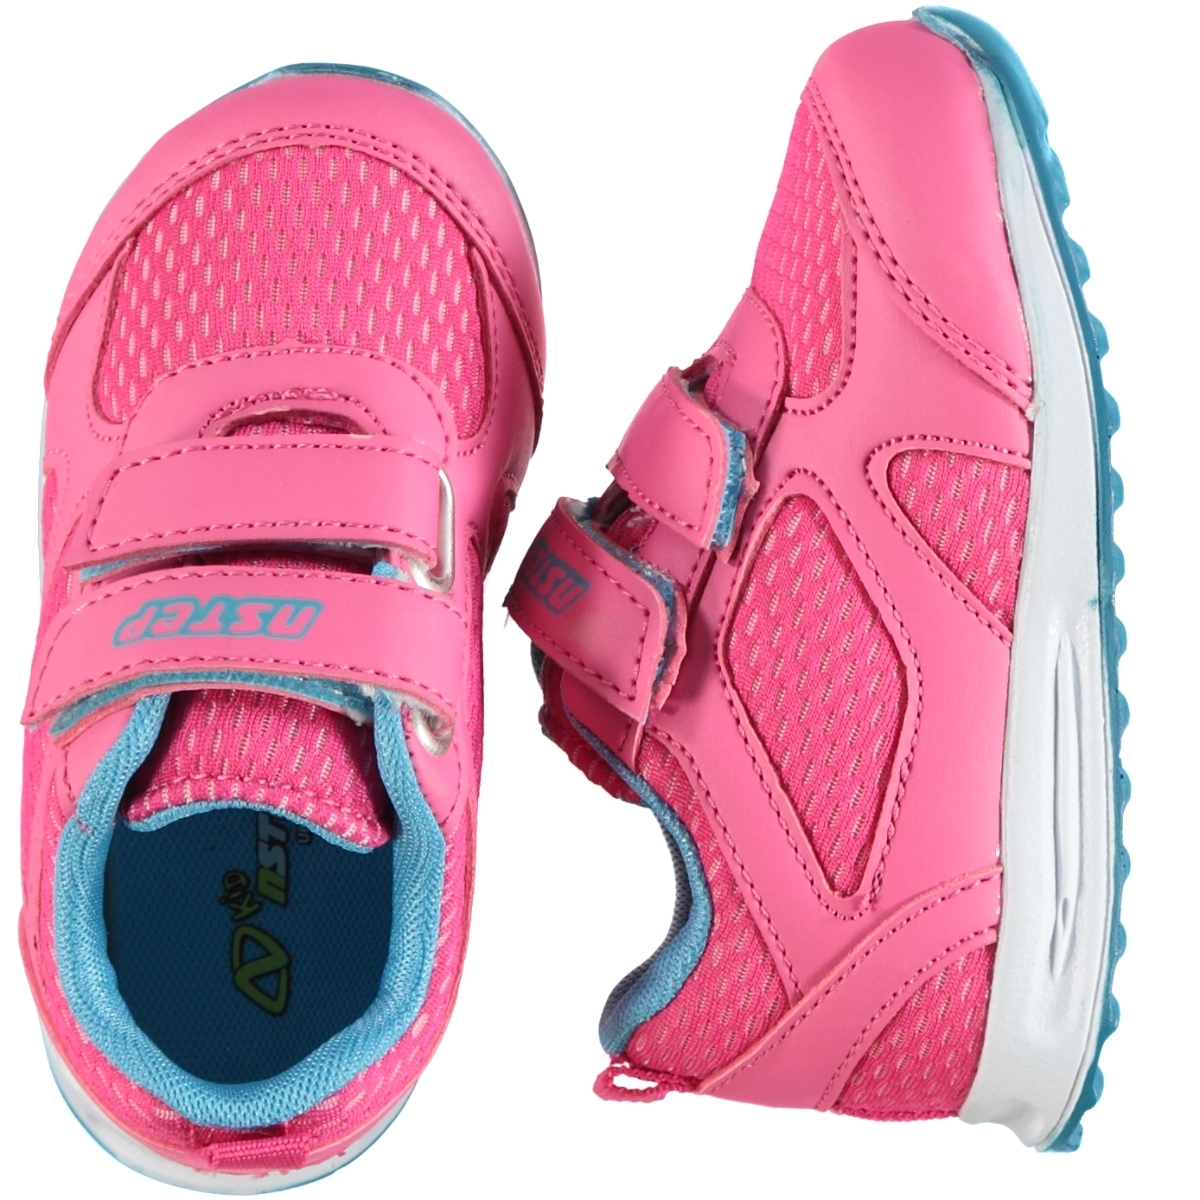 Nstep Baby Sneakers Fuchsia 21-25 Number